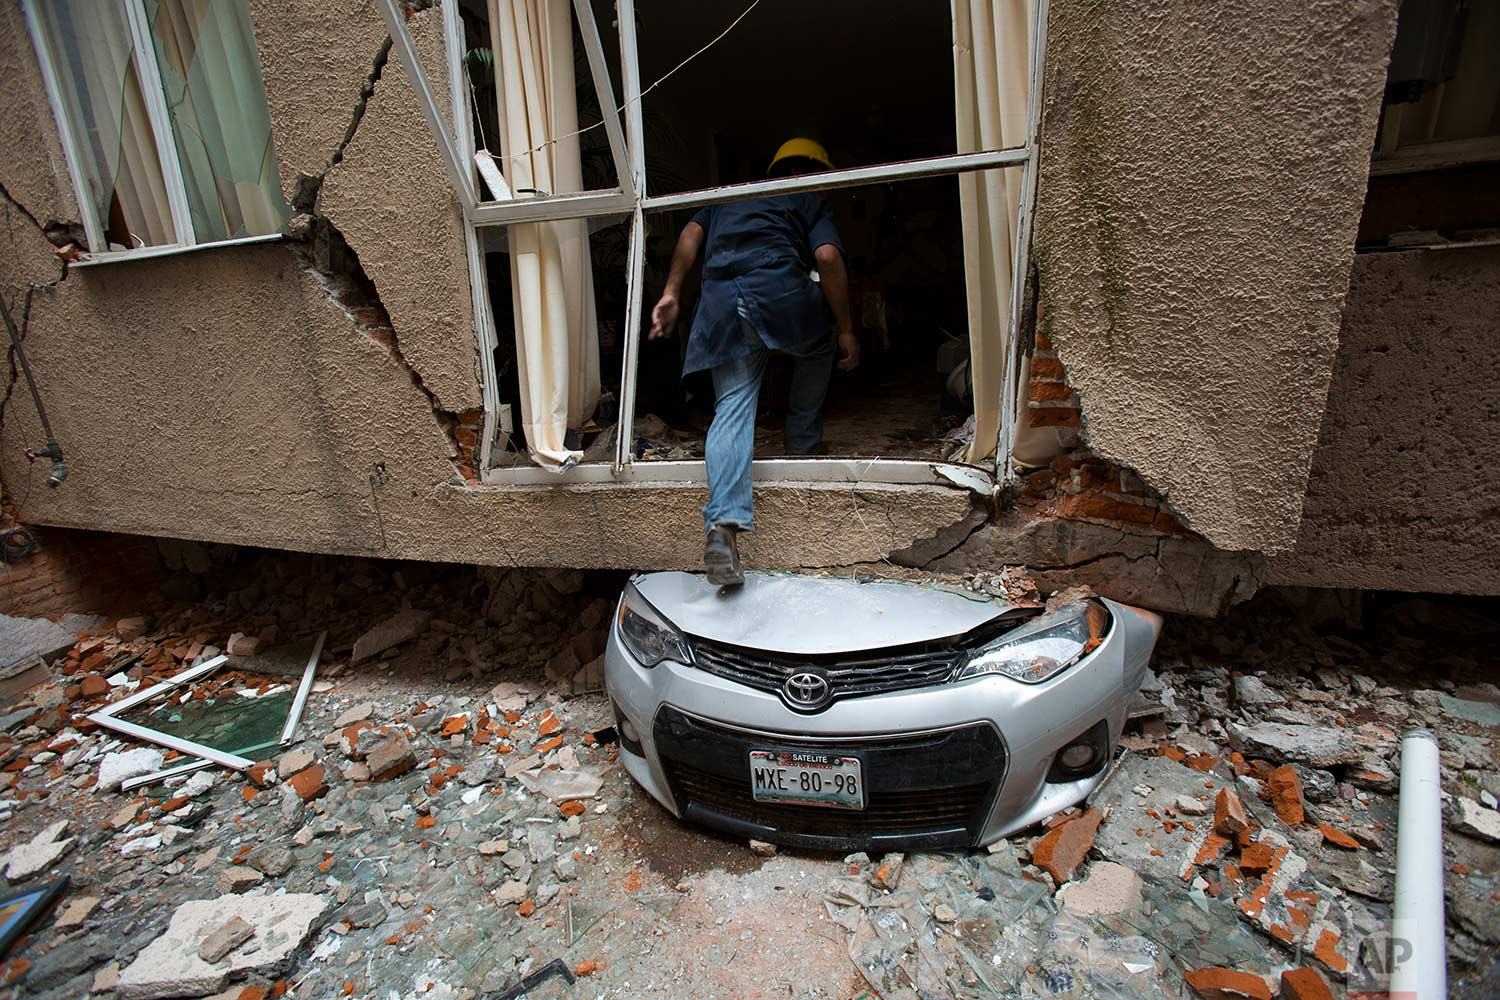 Rodrigo Diaz Mejia climbs over a crushed car into what was a second-story apartment felled by an earthquake a month earlier in the Portales Norte neighborhood of Mexico City, Wednesday, Oct. 18, 2017. (AP Photo/Rebecca Blackwell)